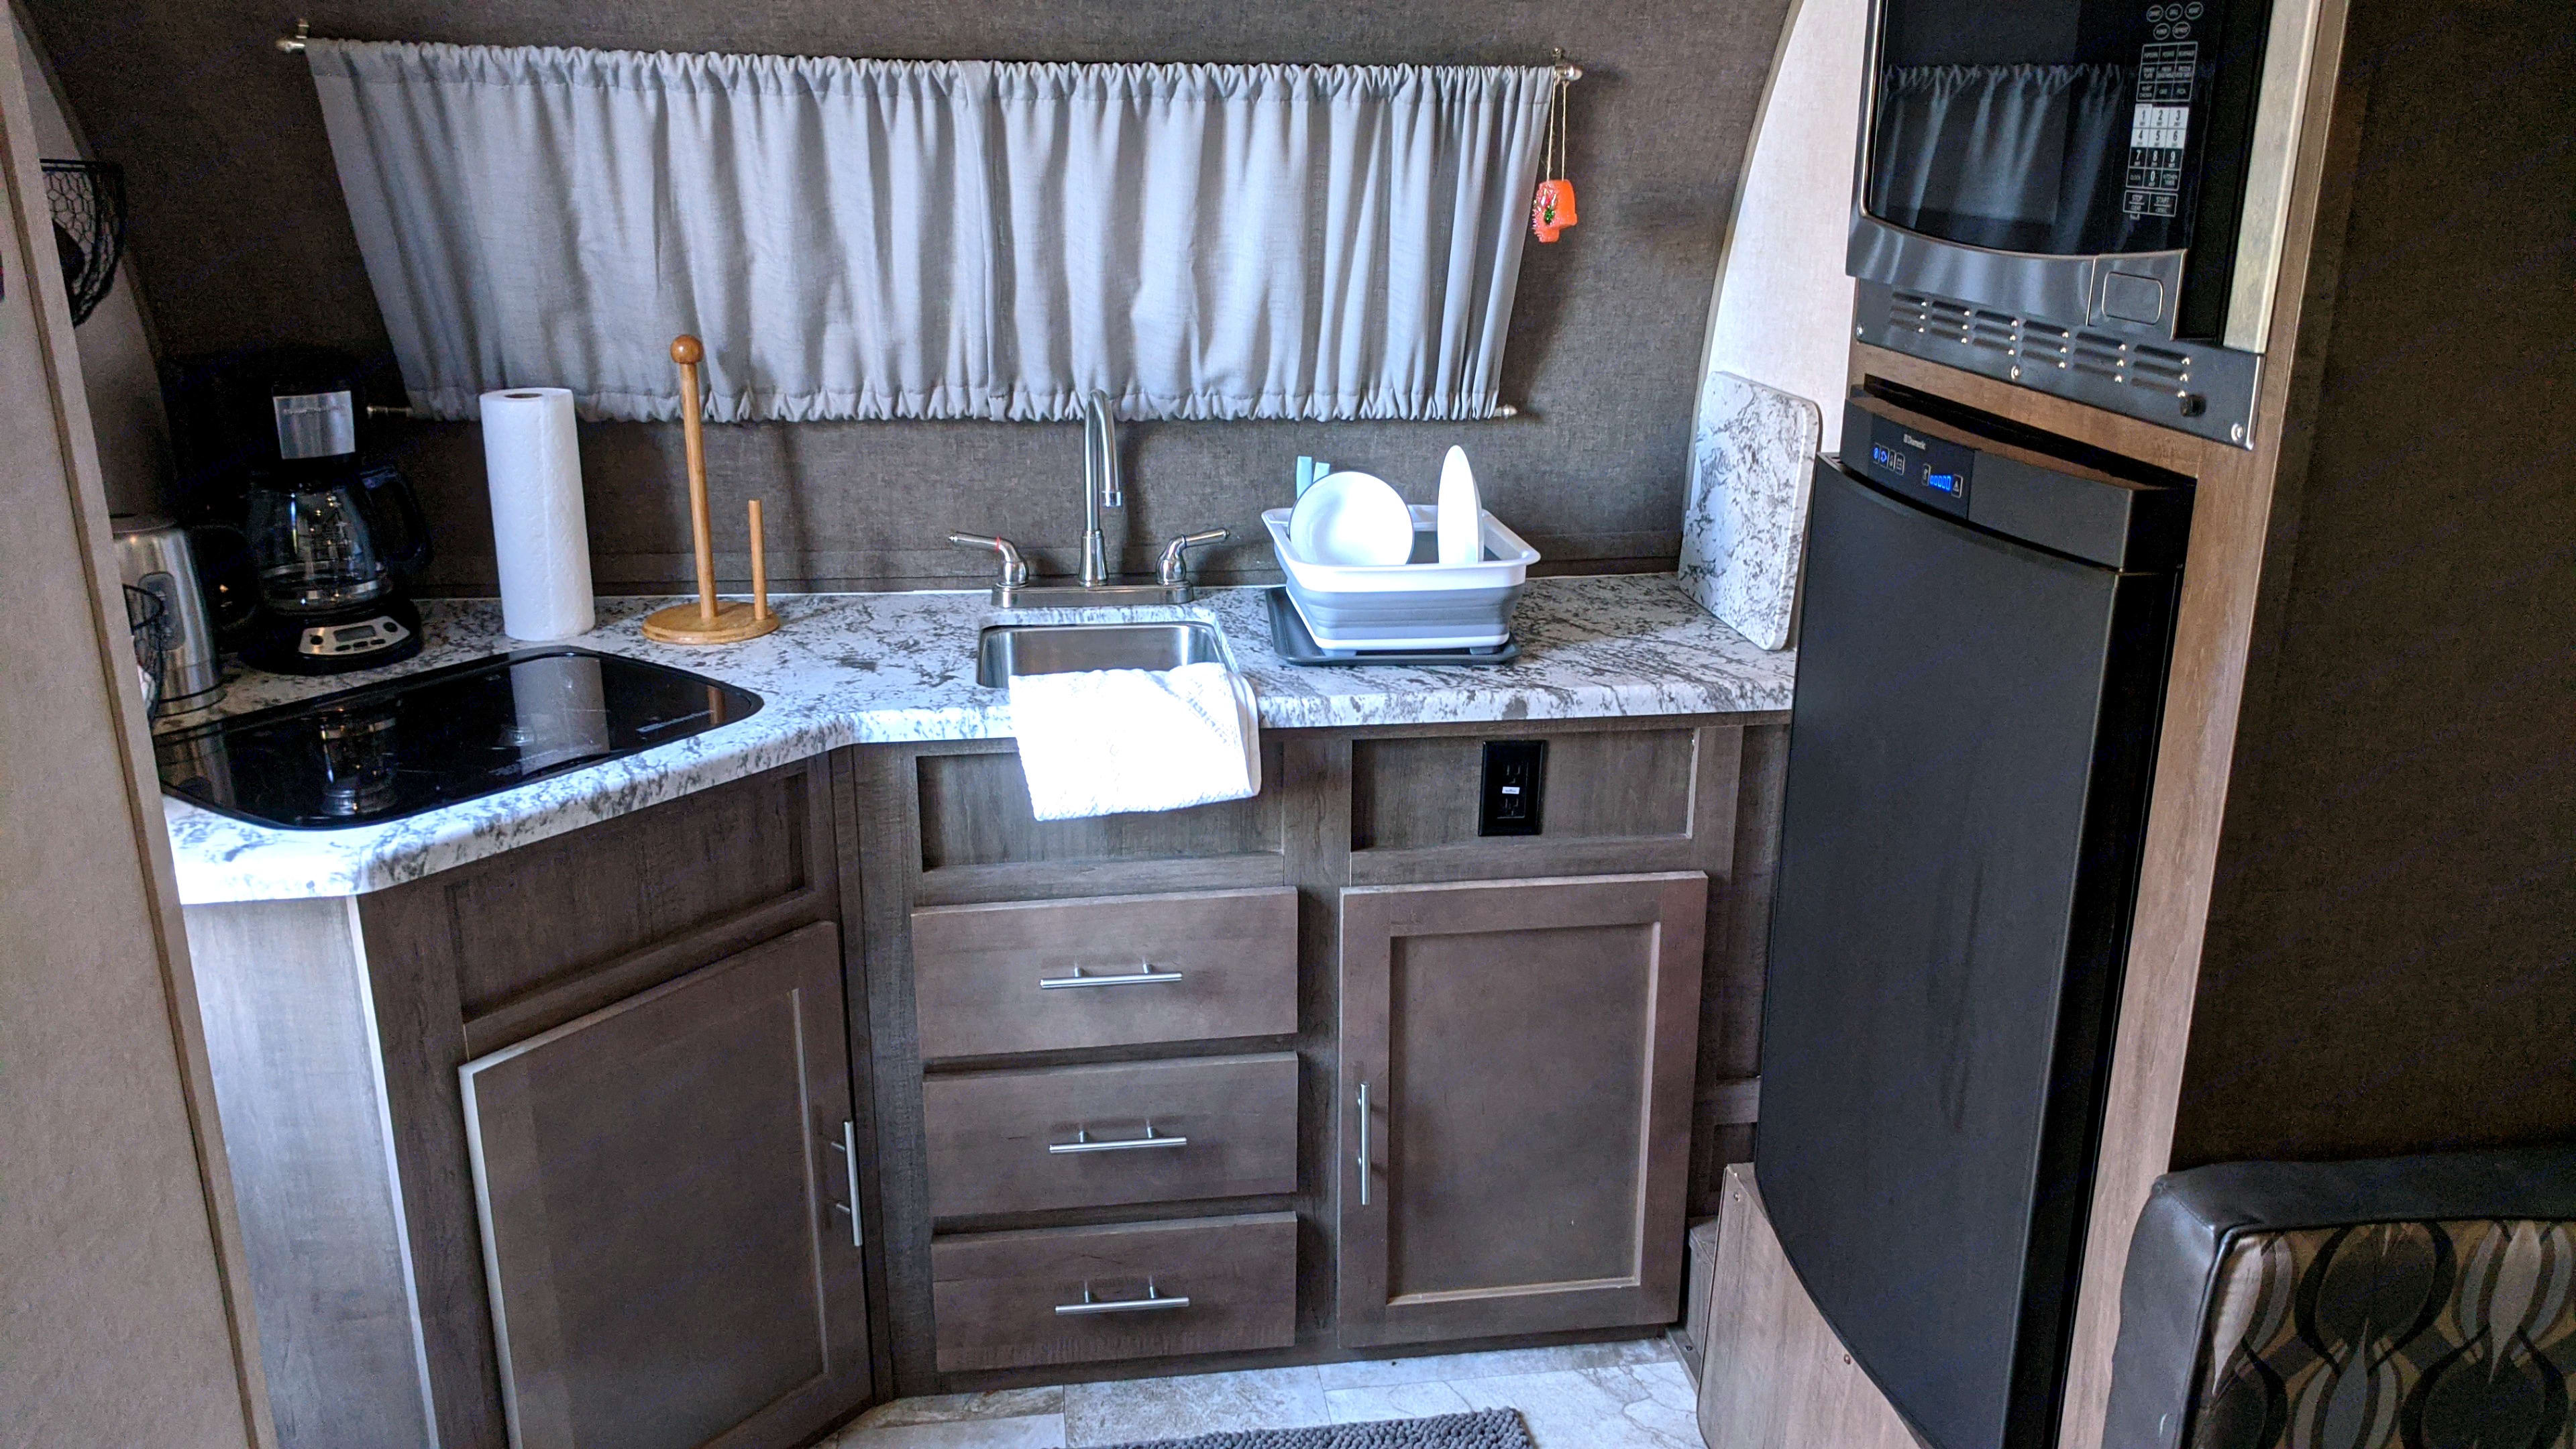 We love this kitchen, plenty of counterspace and storage. Forest River R-Pod 2019